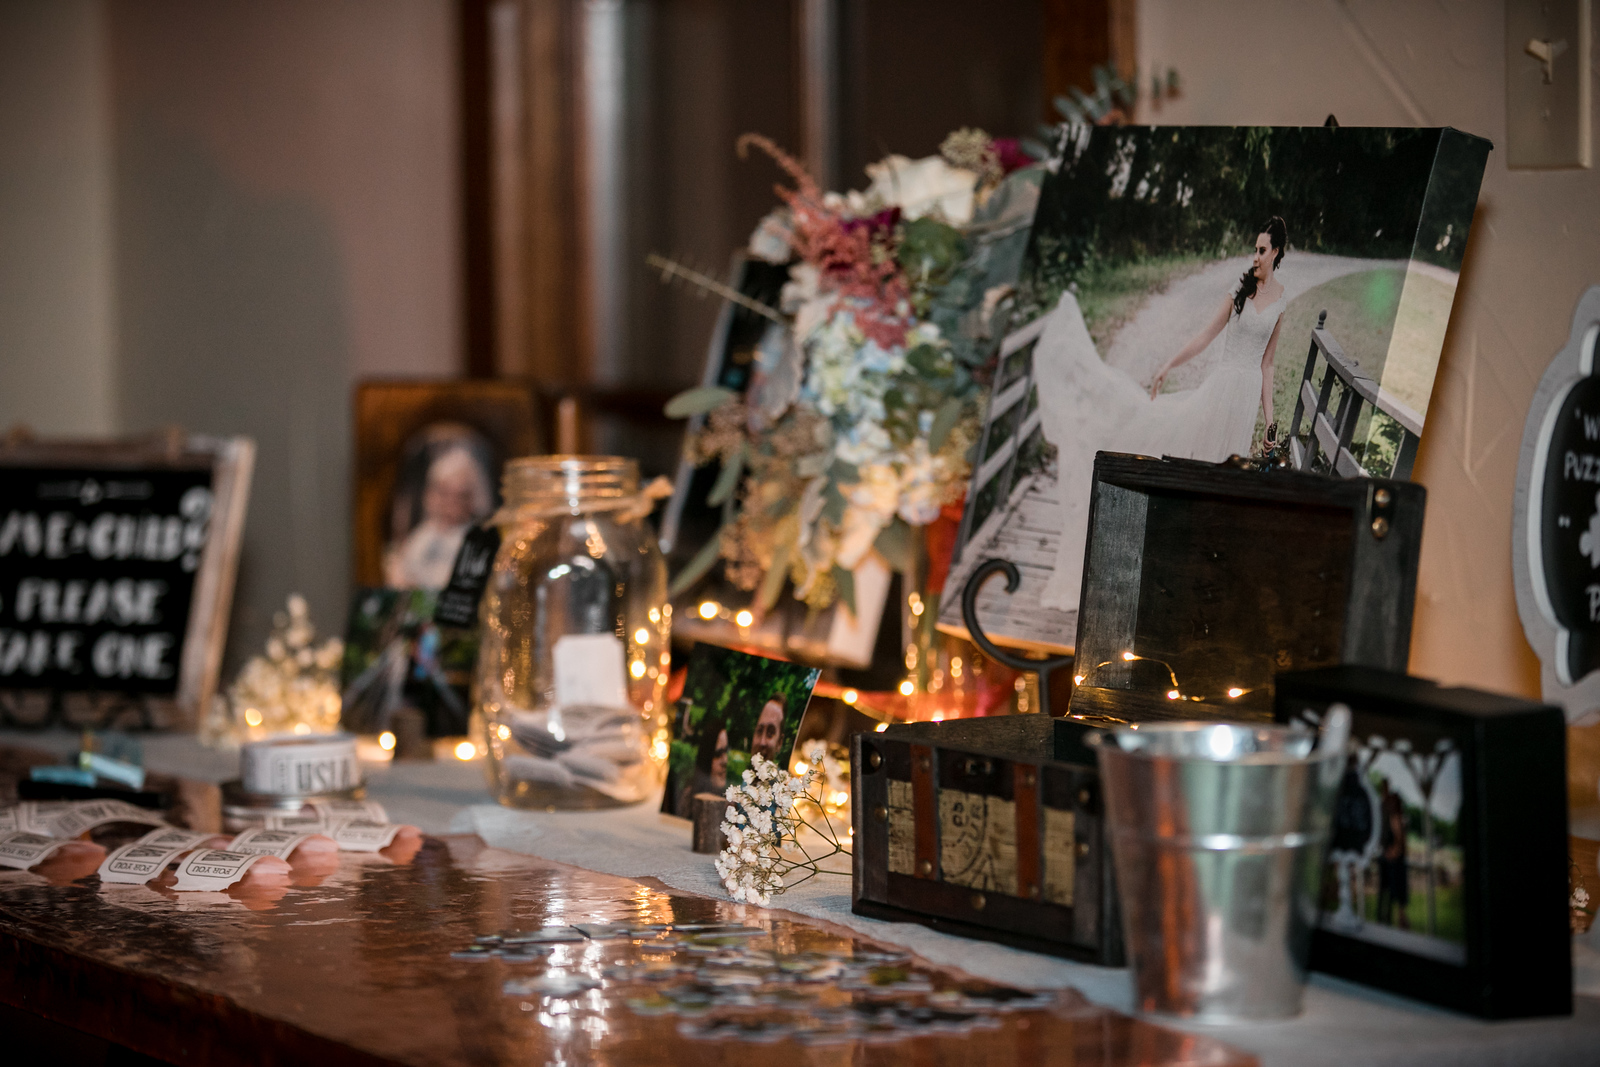 table of photos on canvas and in frames with glass jars and galvanized buckets with flowers as decoration